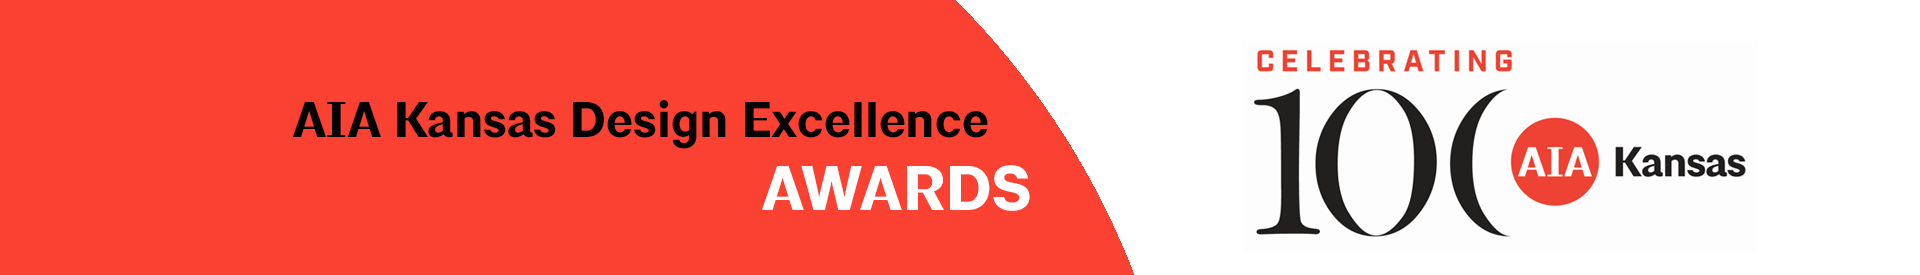 2021 AIA KS Design Excellence Awards Event Banner